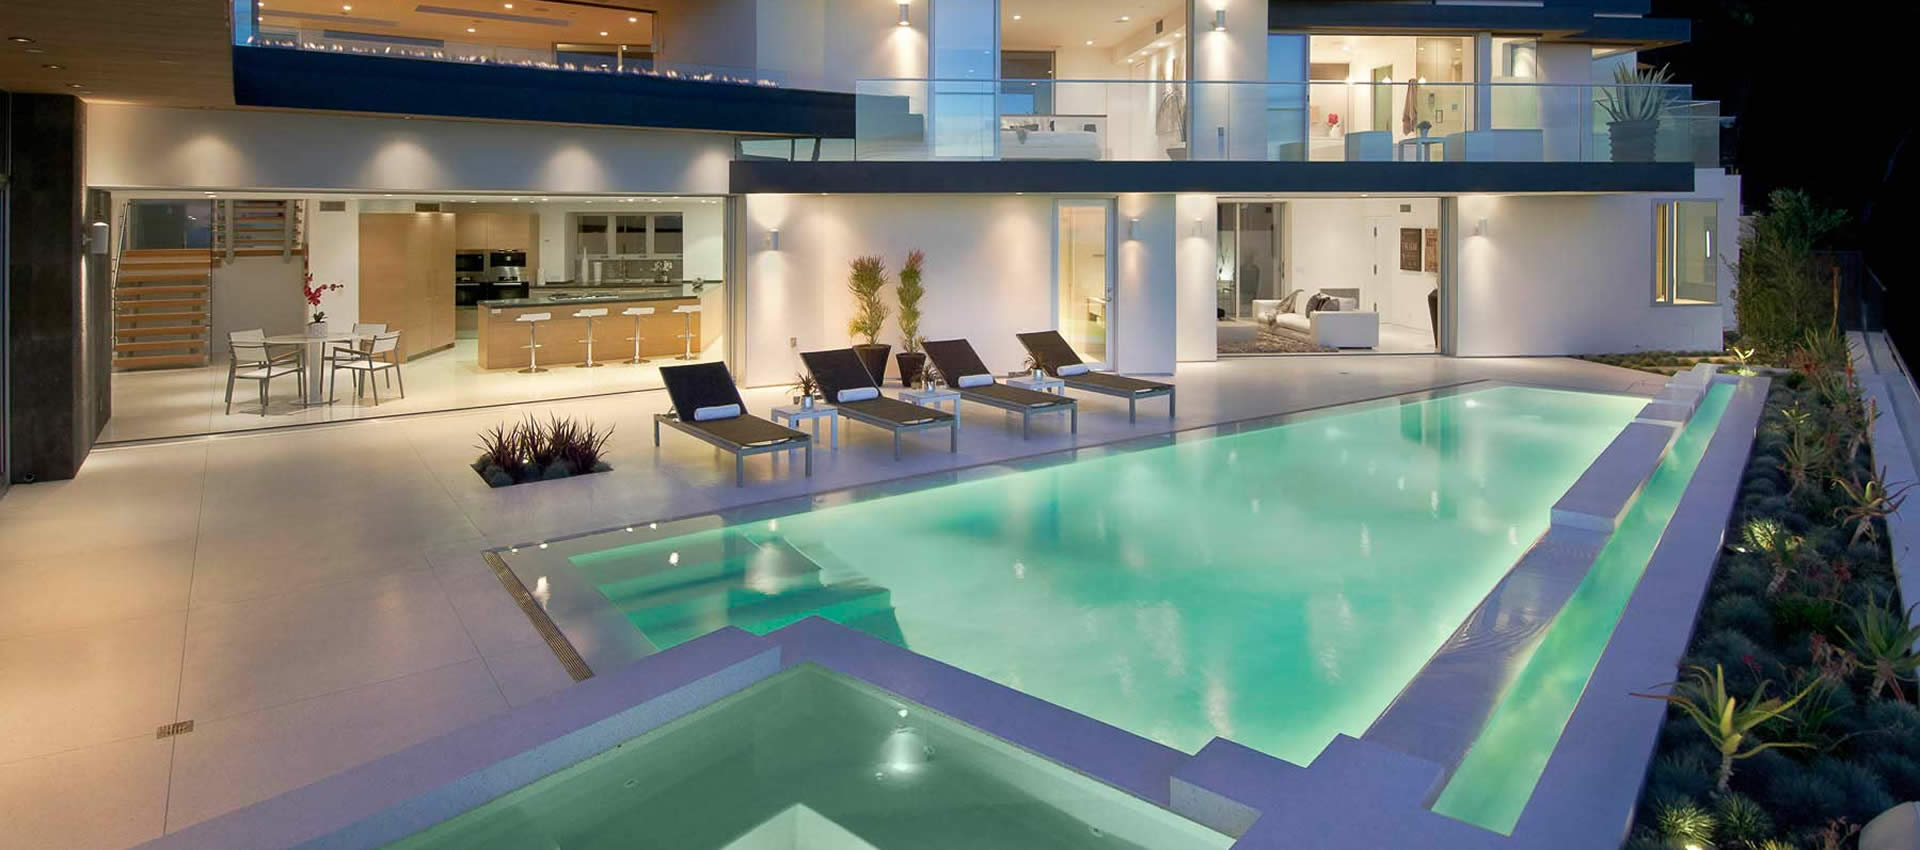 Los angeles pool builders southern california swimming - Indoor swimming pools in los angeles ca ...